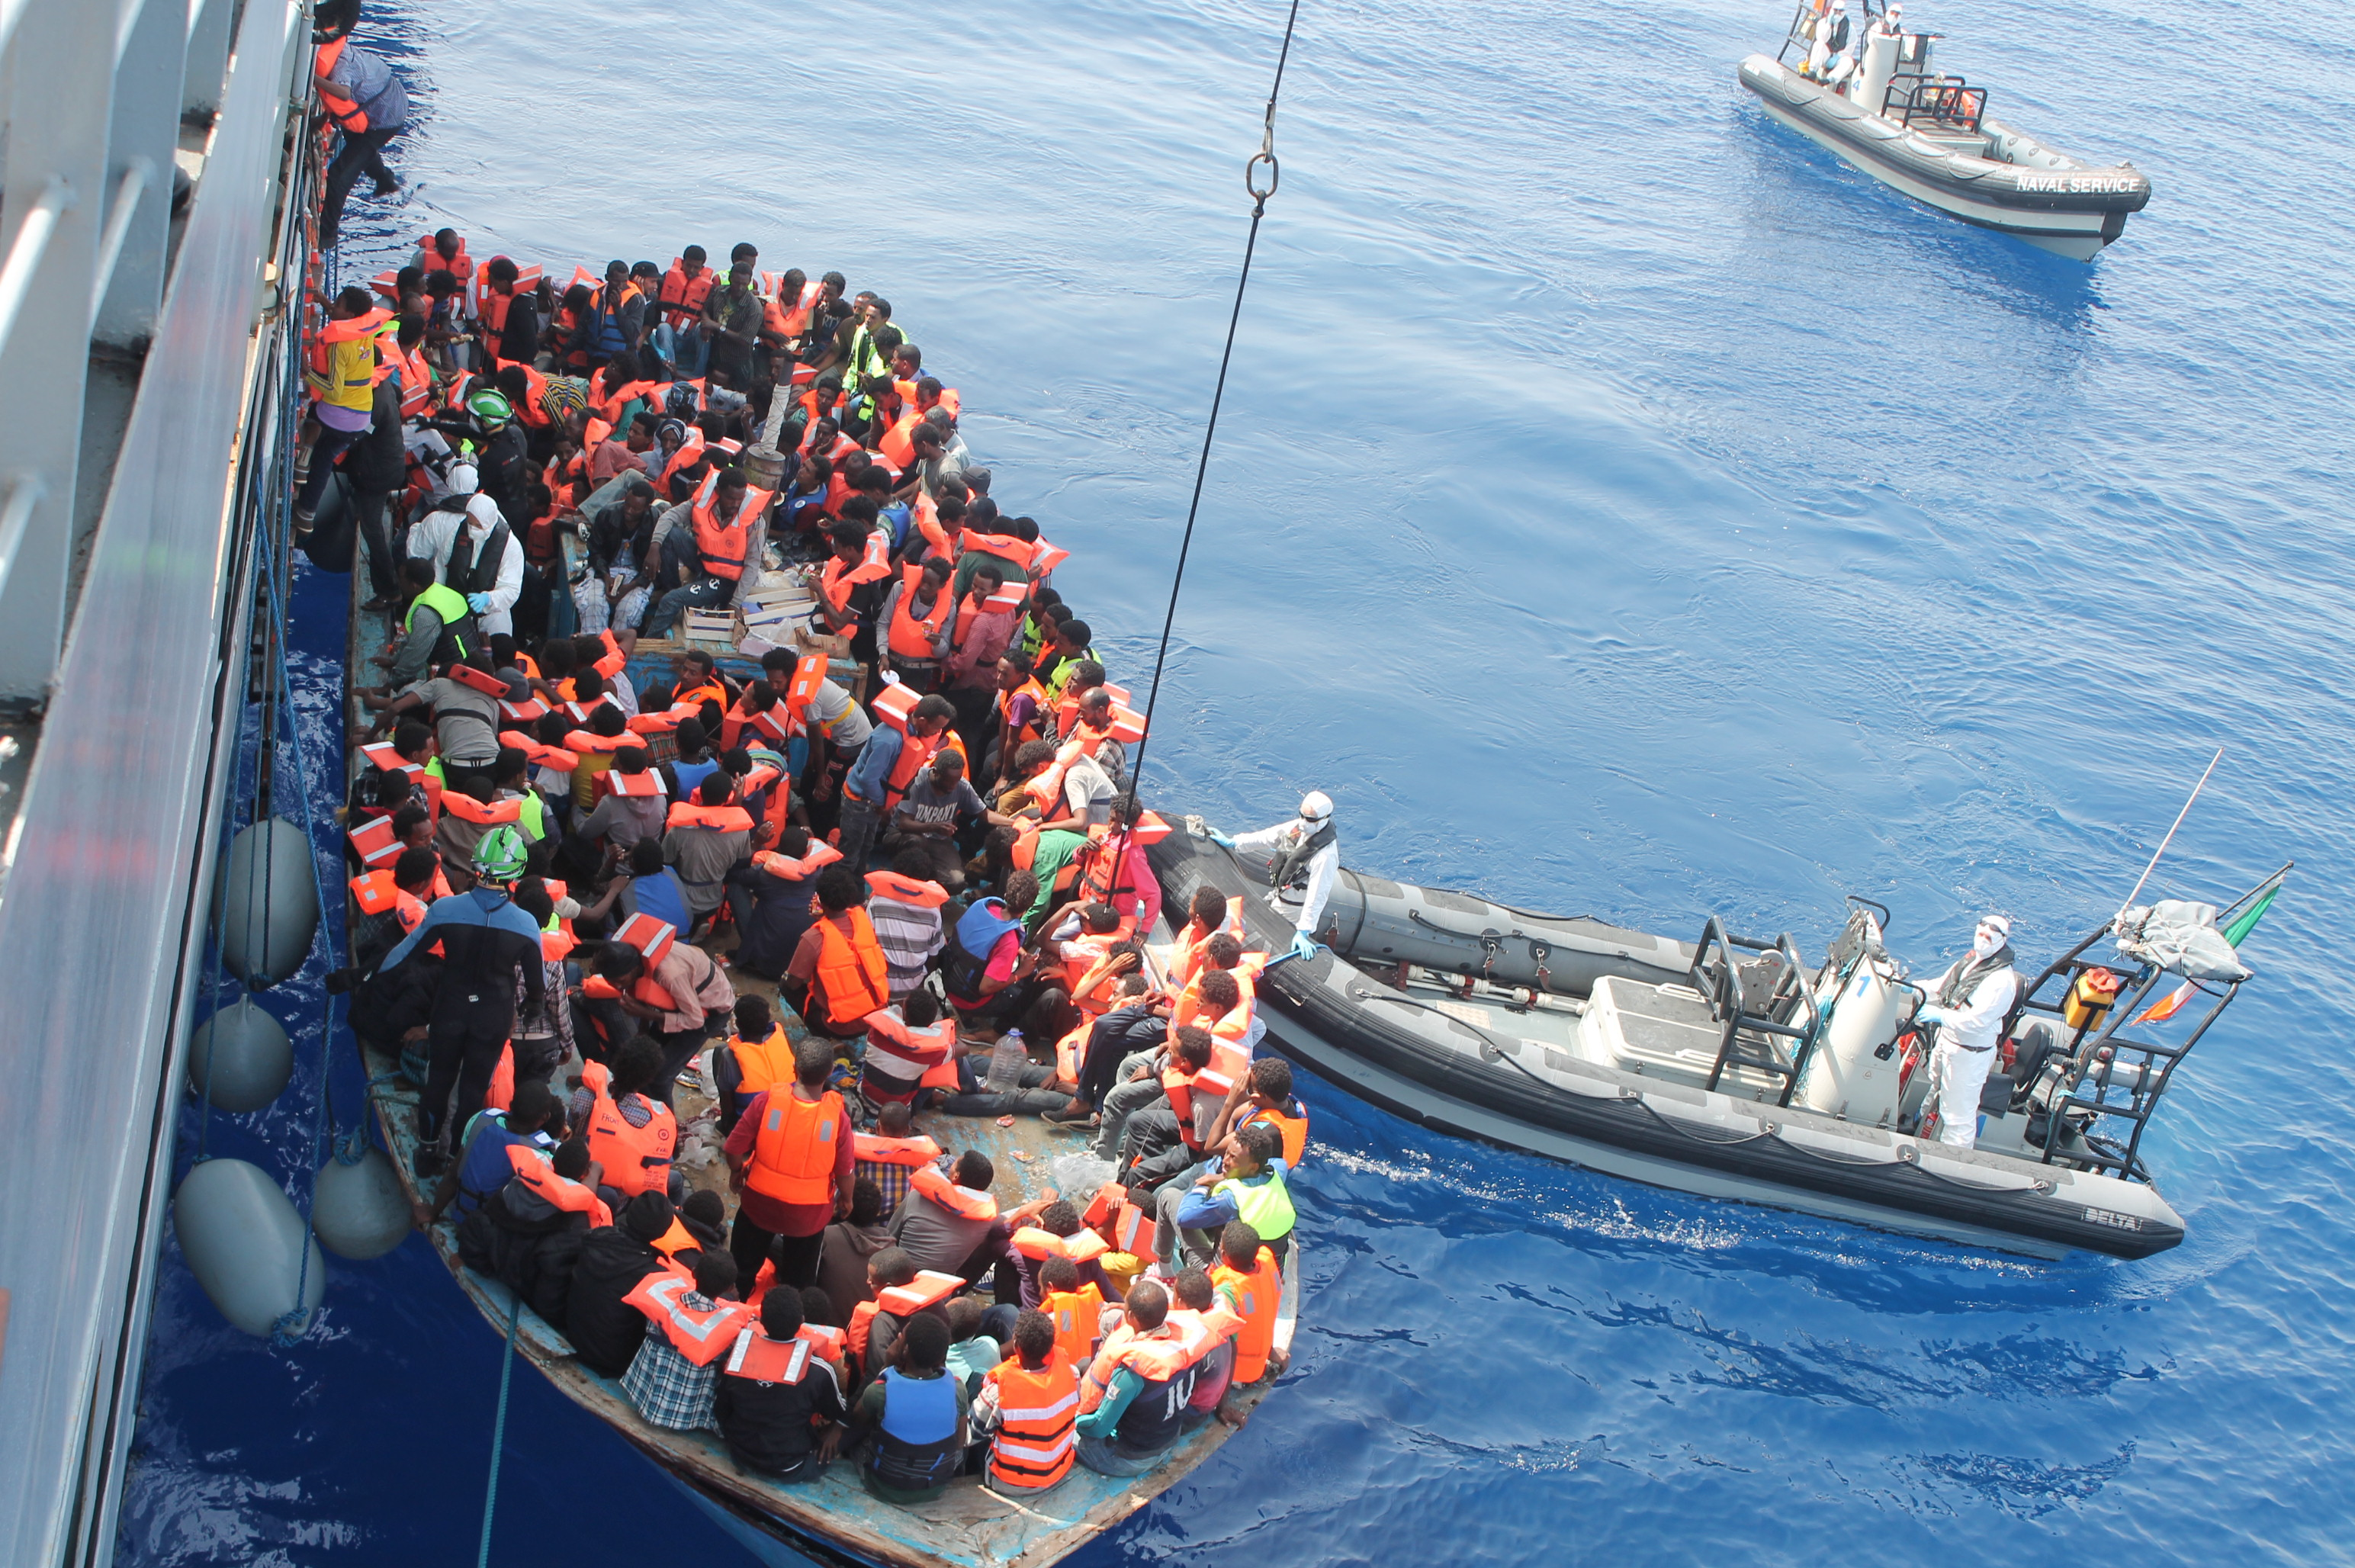 Cyprus to Calais: The Need for European Migration Reform